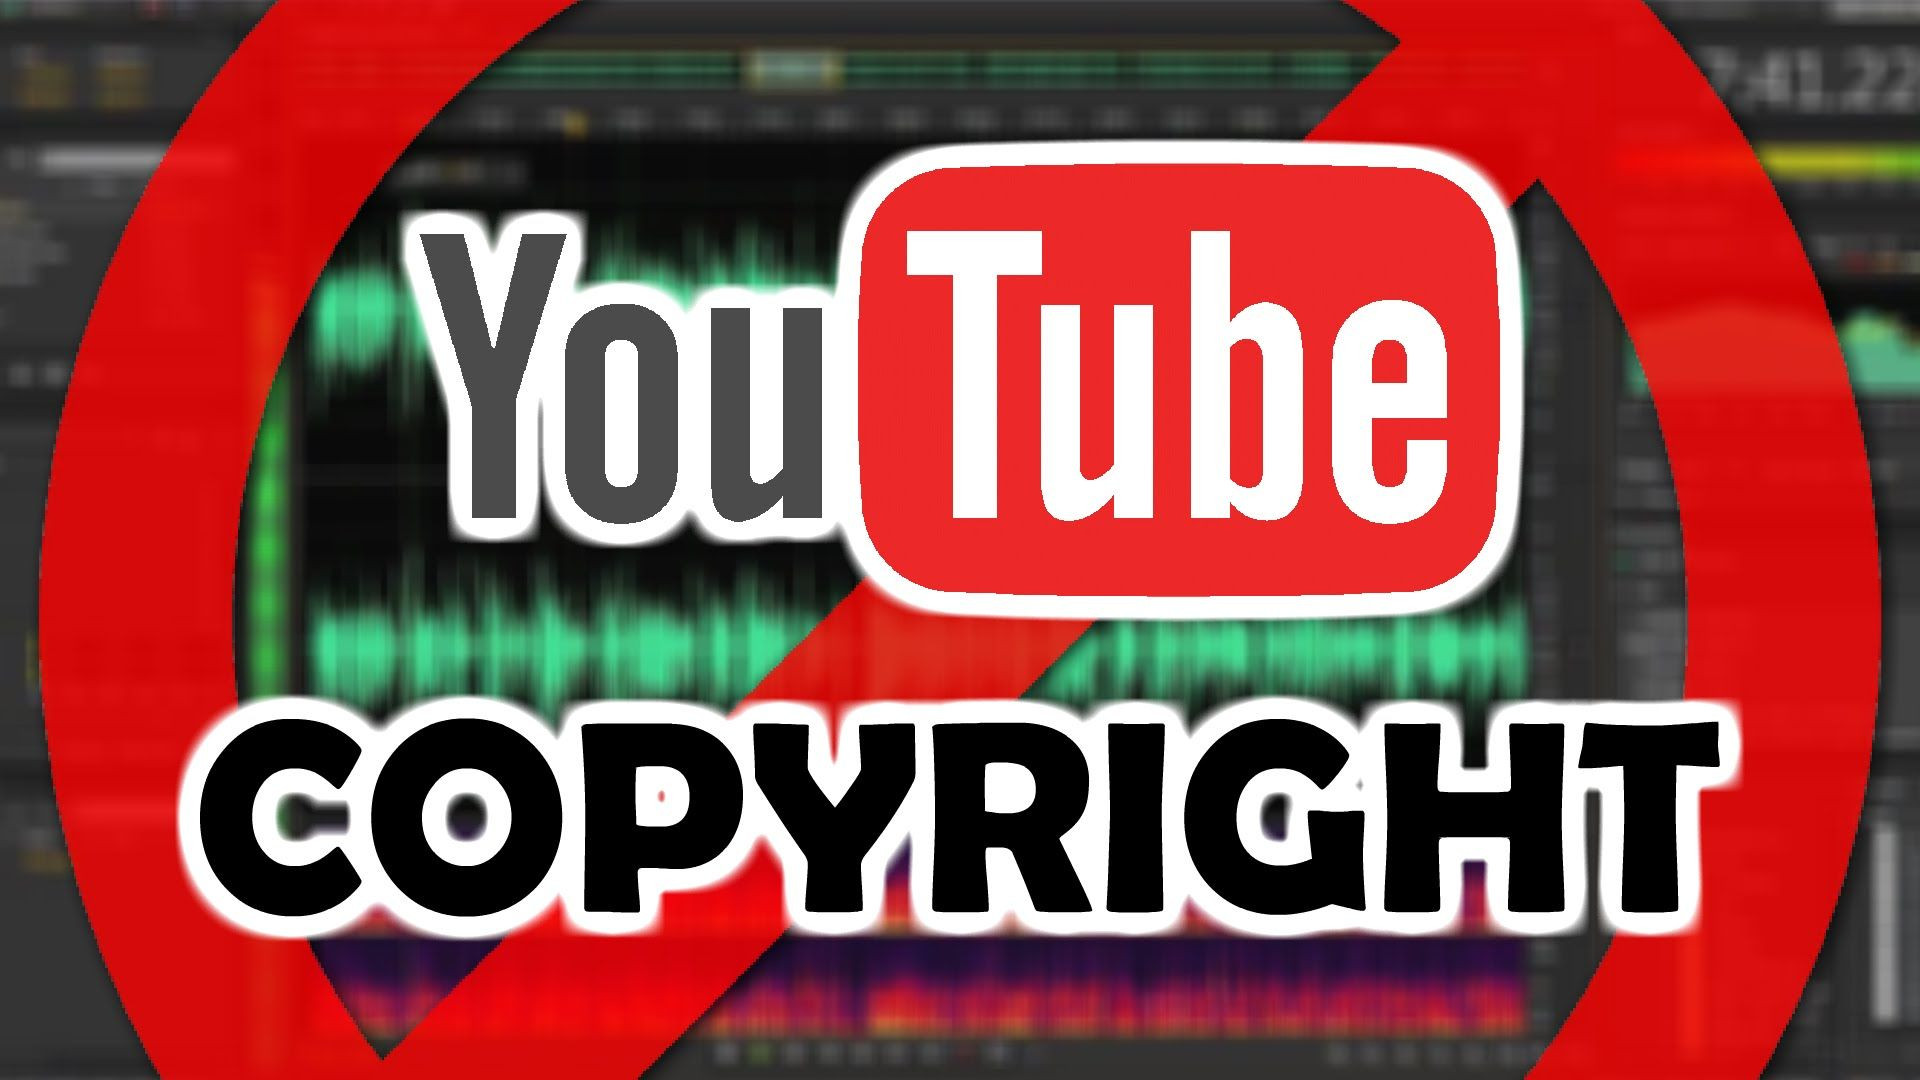 copyrigth Youtube